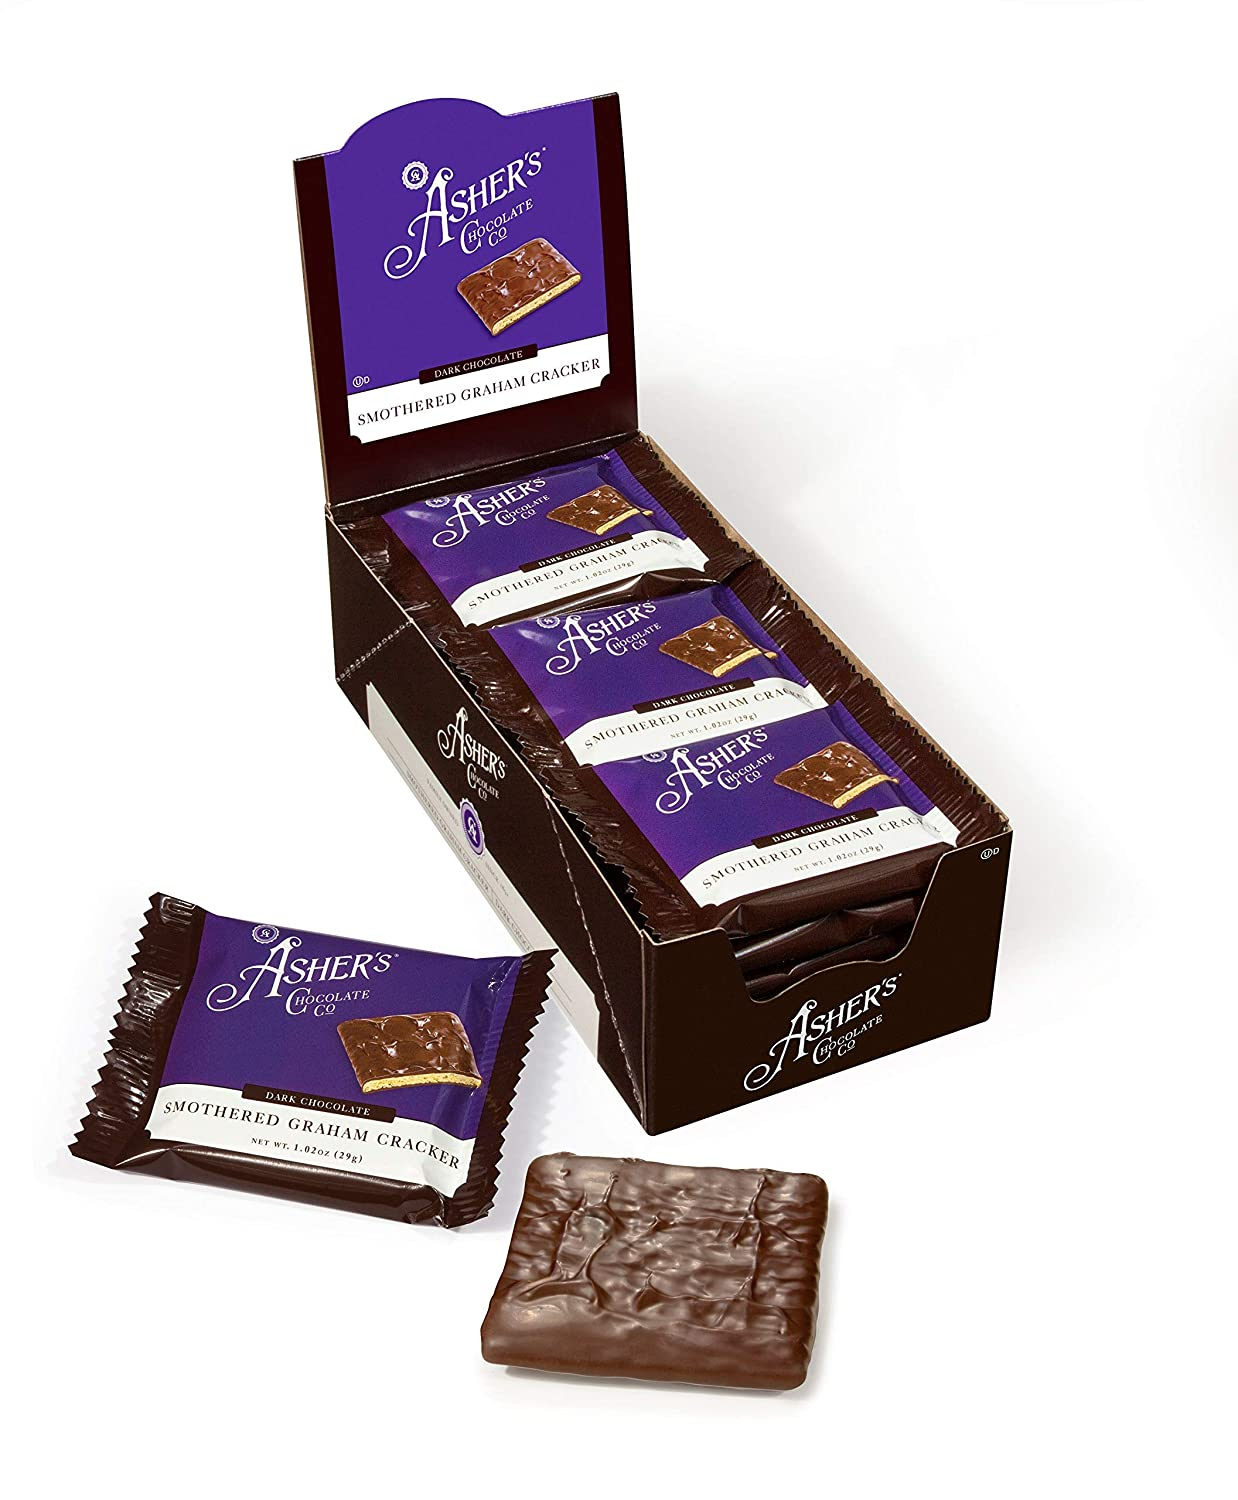 Asher's Chocolates Gourmet Chocolate Graham Covered Spring new work Max 48% OFF S Crackers